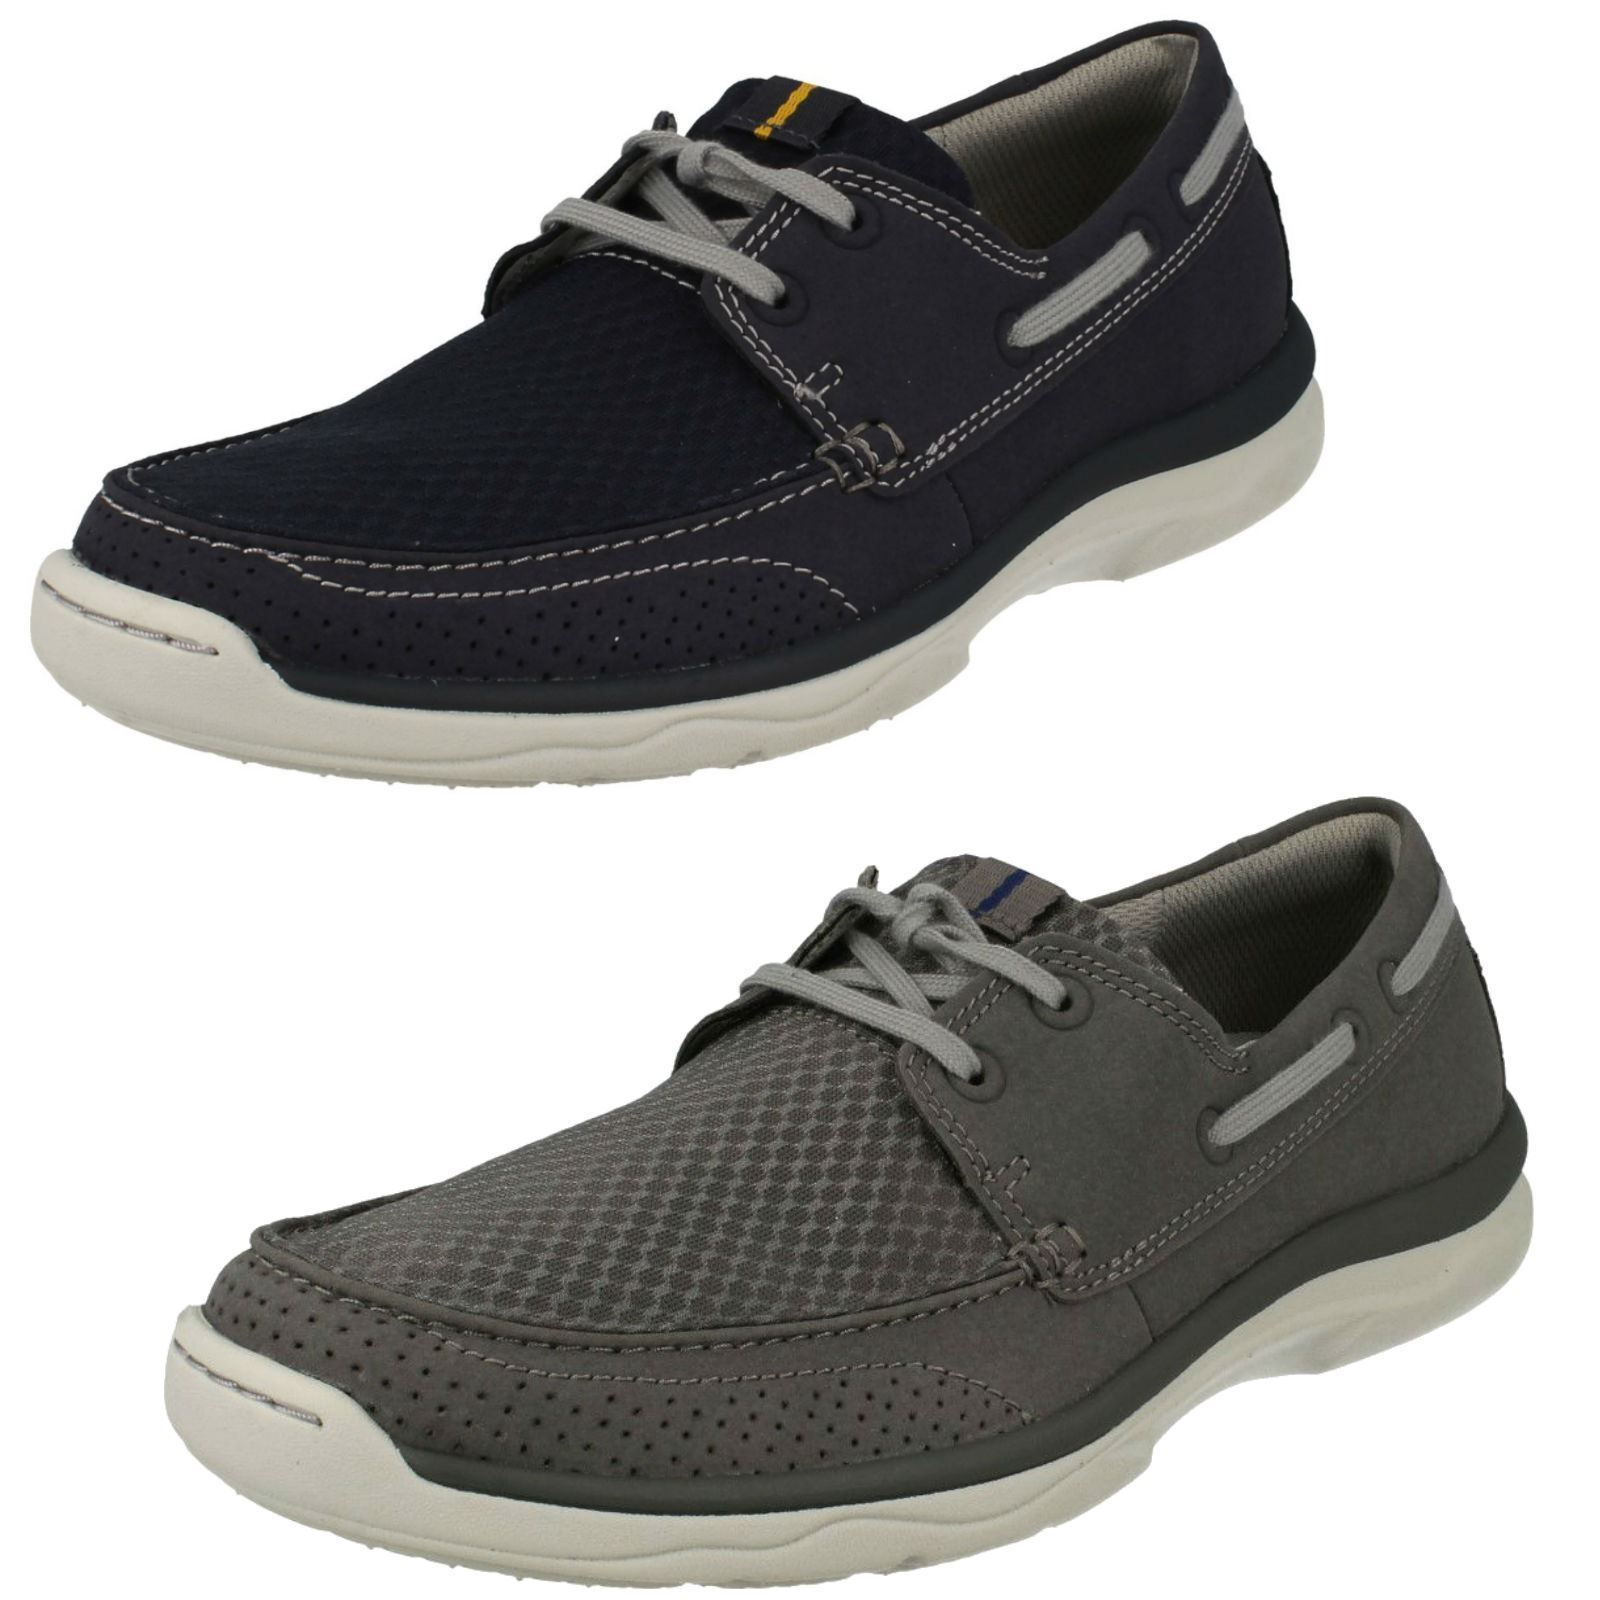 Mens Clarks Cloudsteppers Lace Up Casual shoes Marus Edge